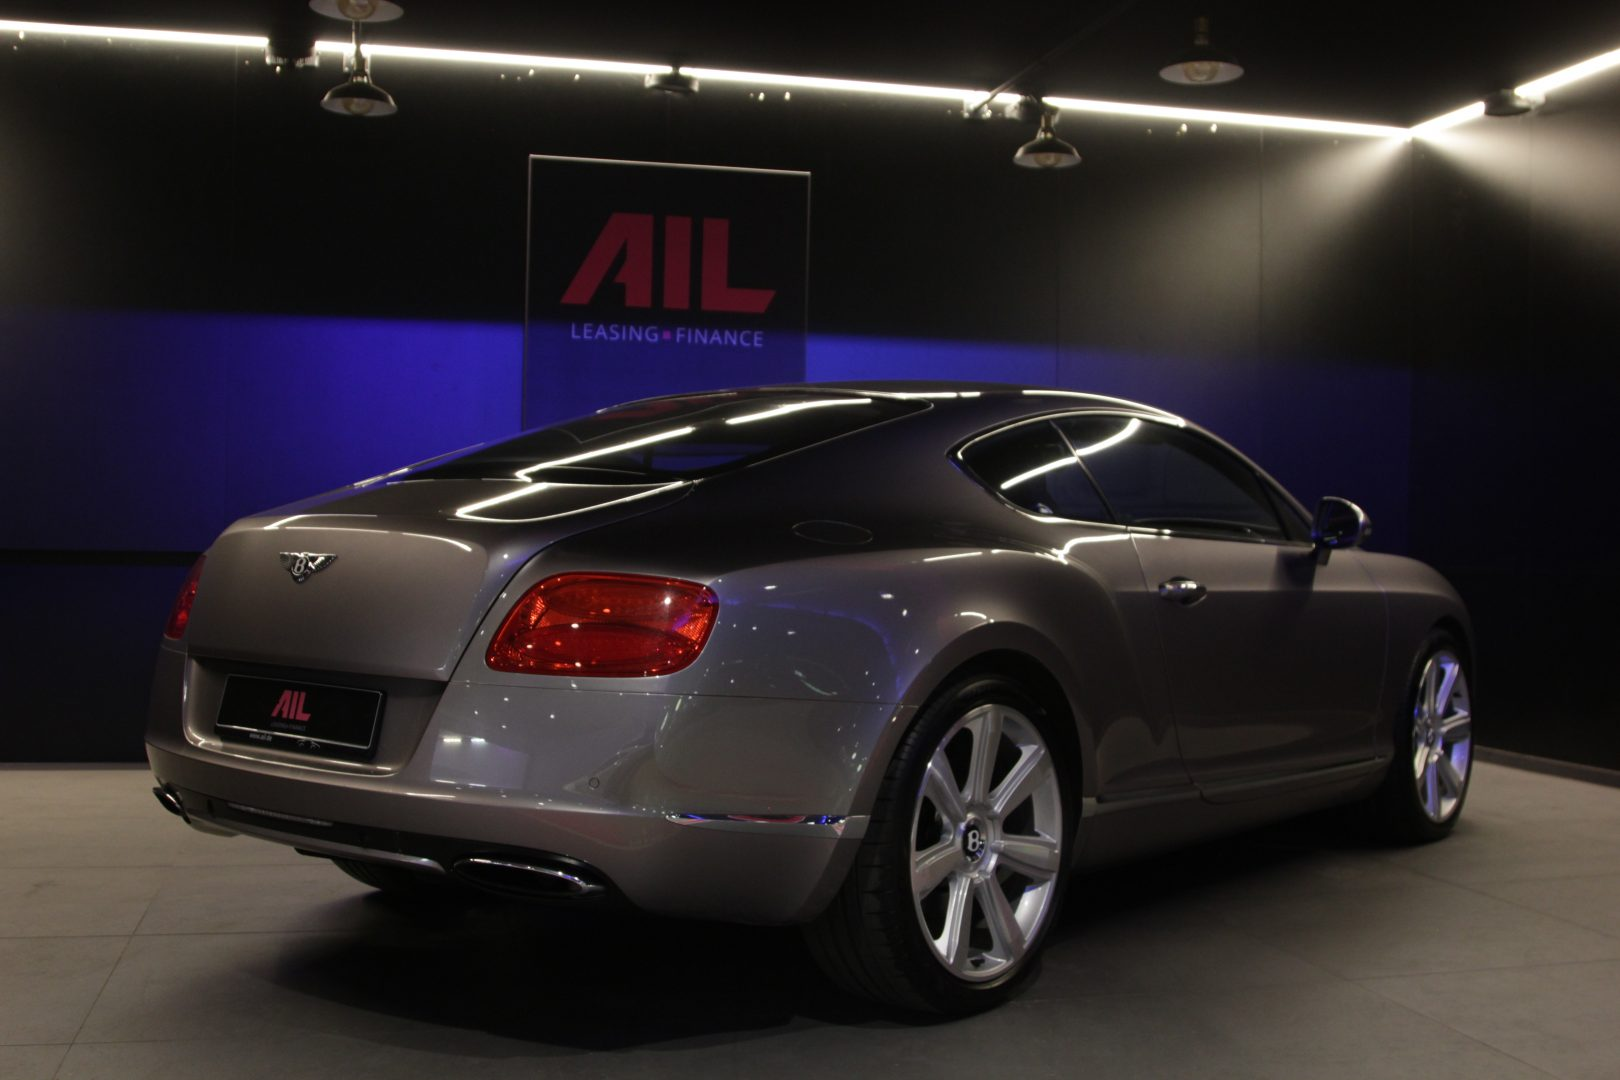 AIL Bentley Continental GT 6.0 W12 8